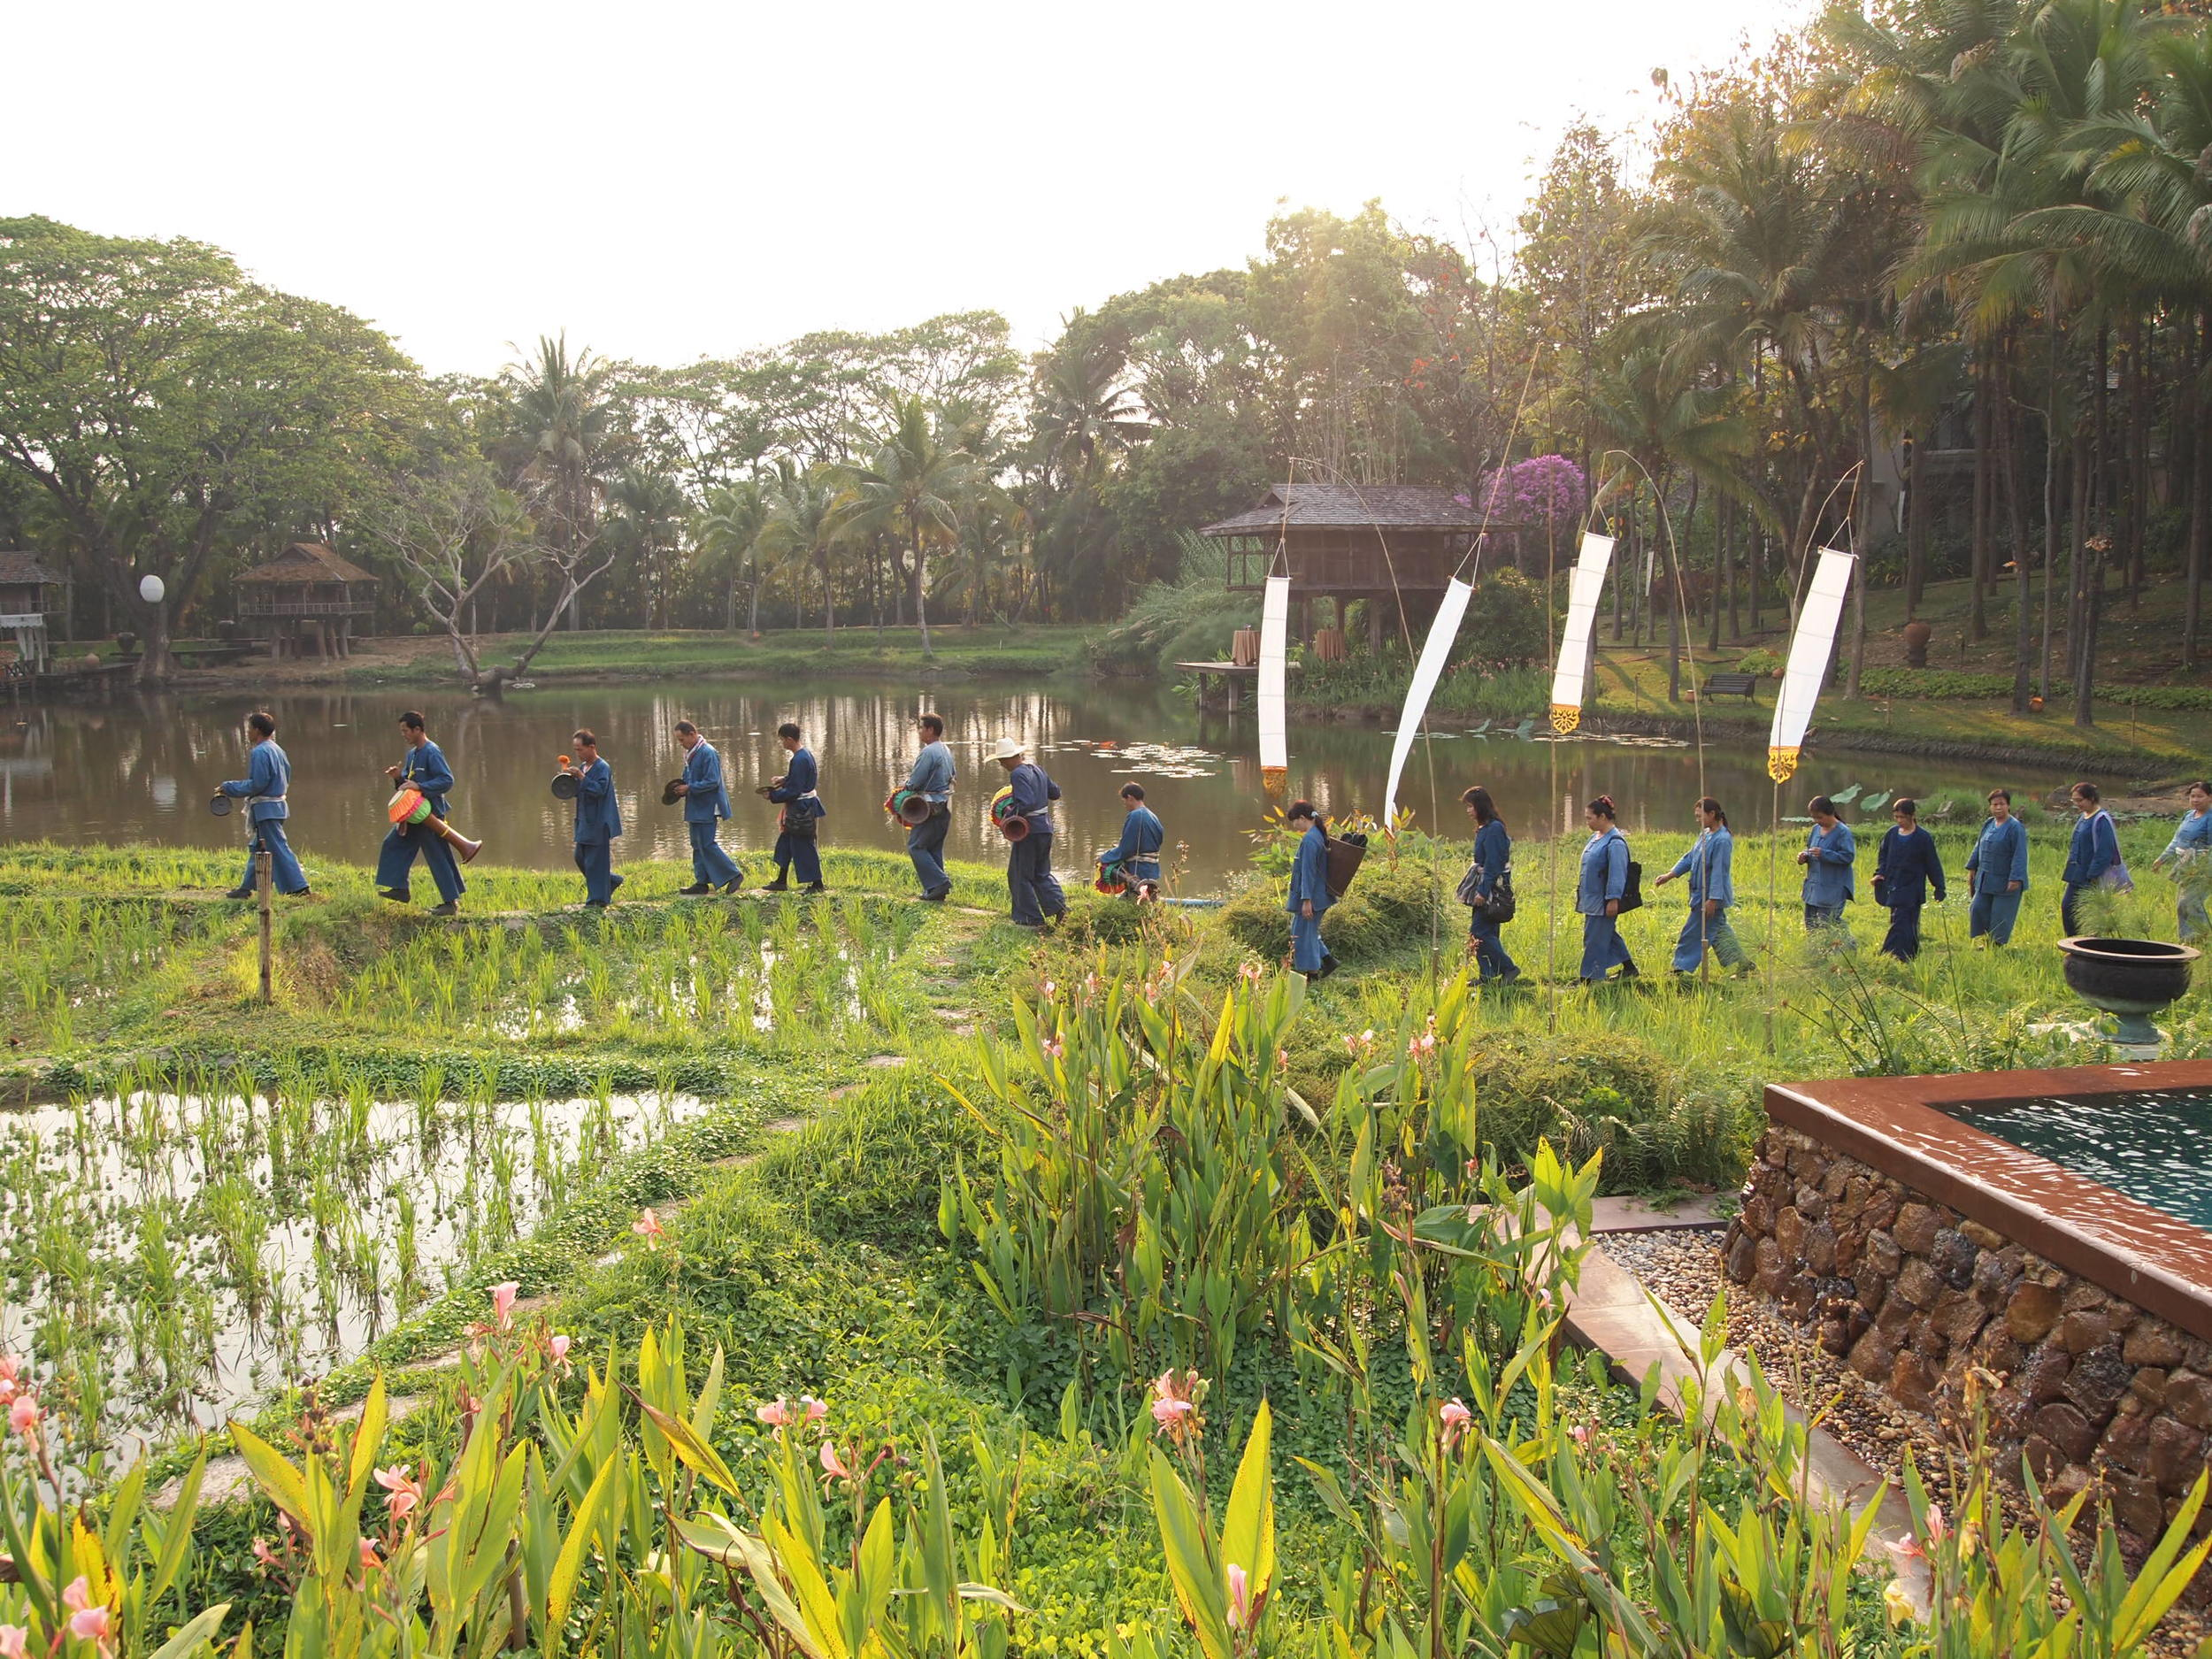 The rice paddy parade, an end-of-day procession happening every night at 4.50pm